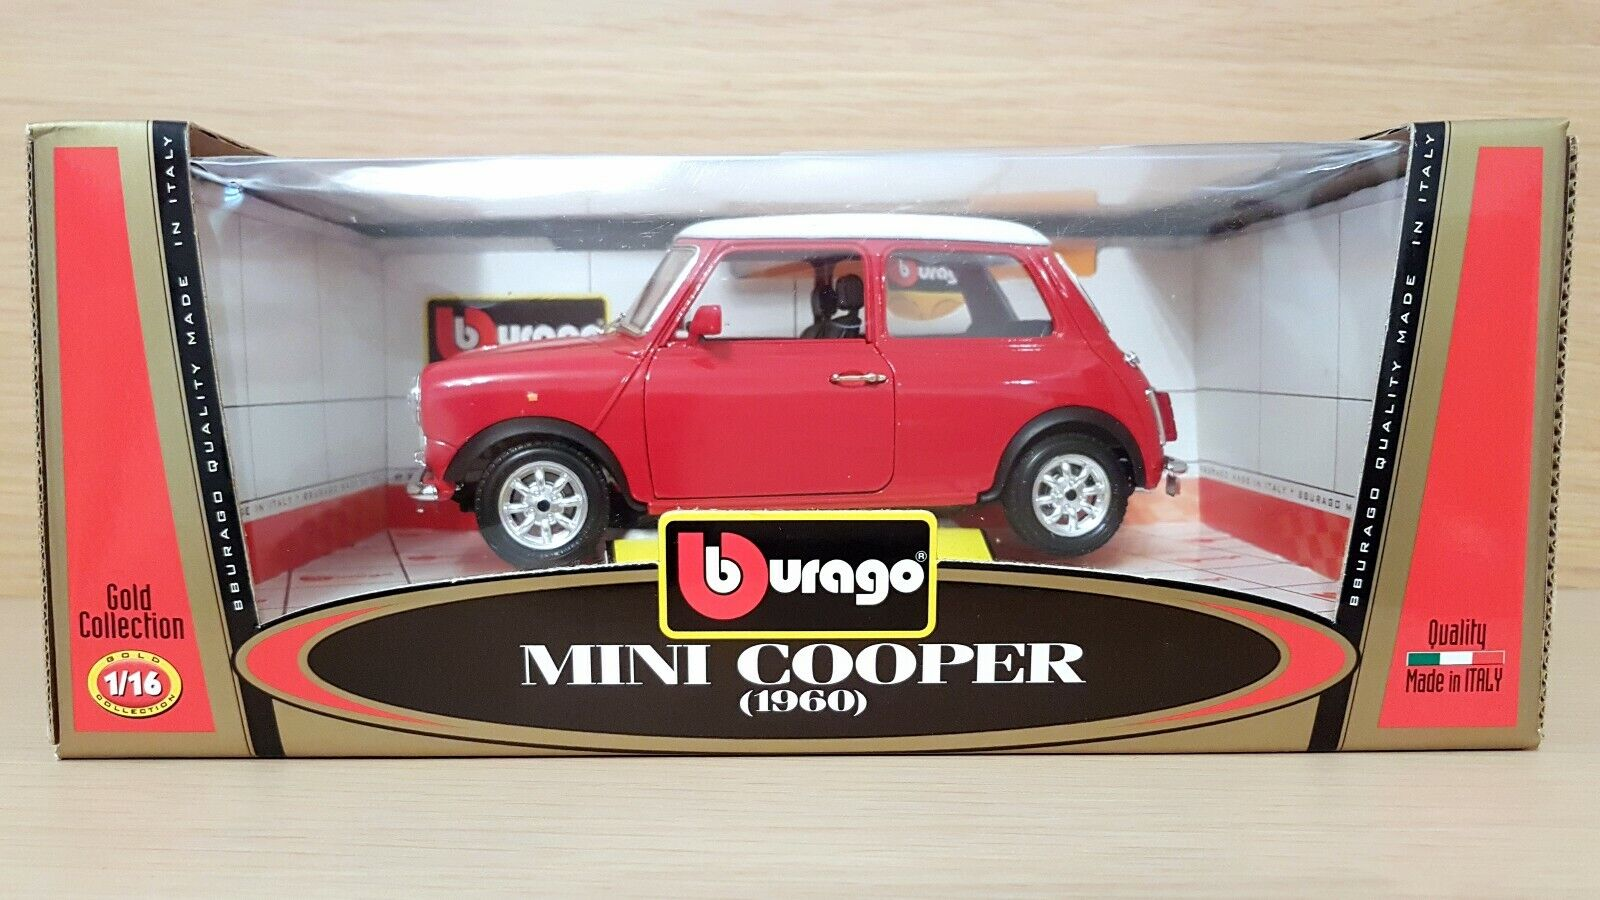 Mini Cooper (1960) scala 1 16 Bburago Burago Made in